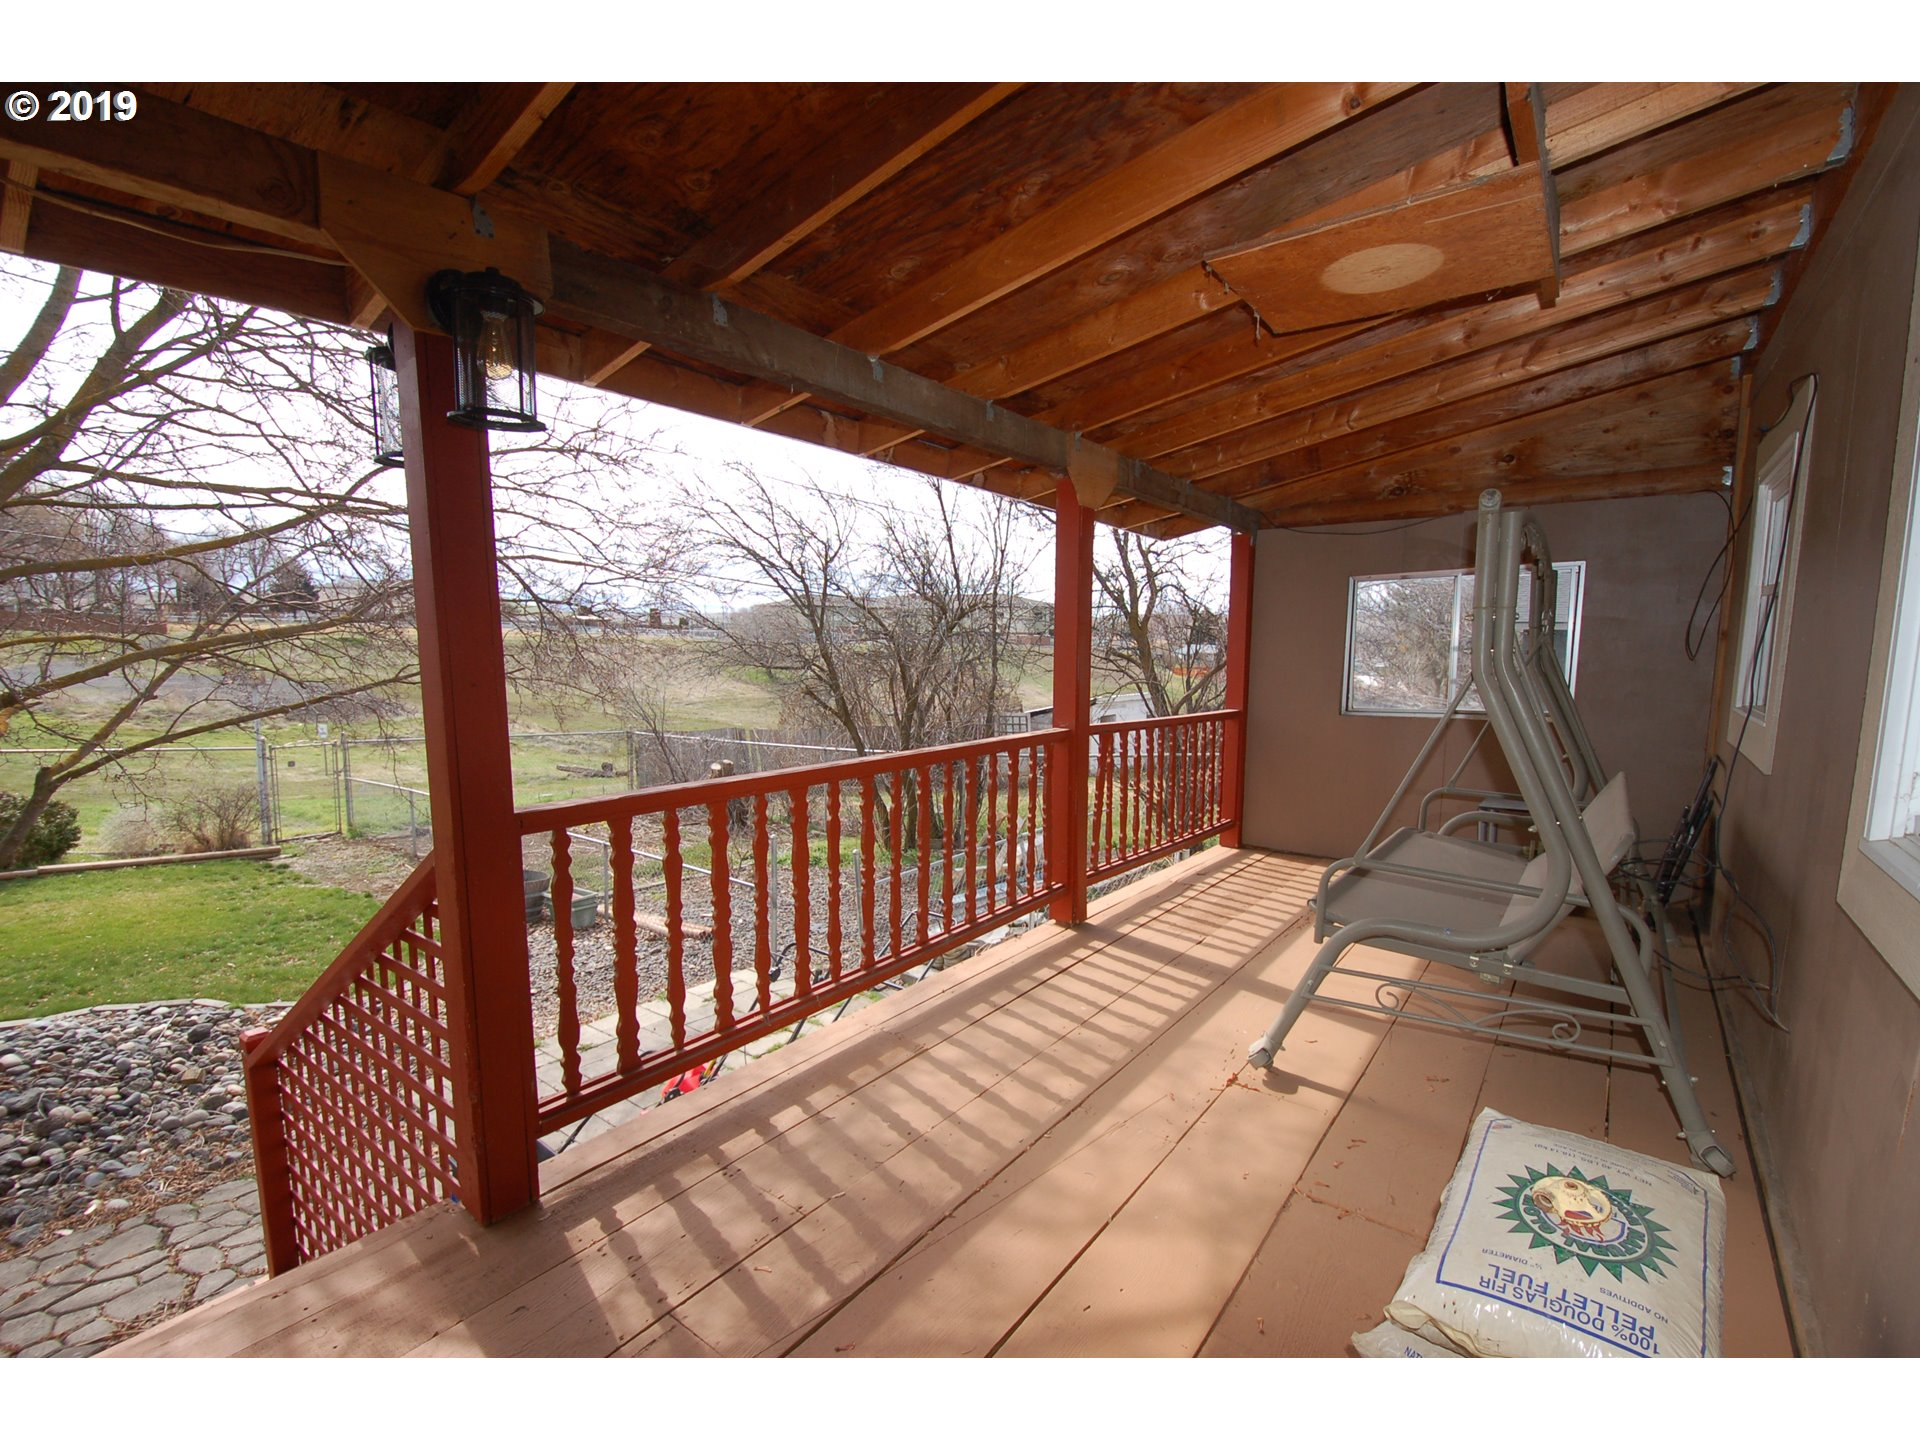 1620 sq. ft 3 bedrooms 2 bathrooms  House For Sale,Pendleton, OR